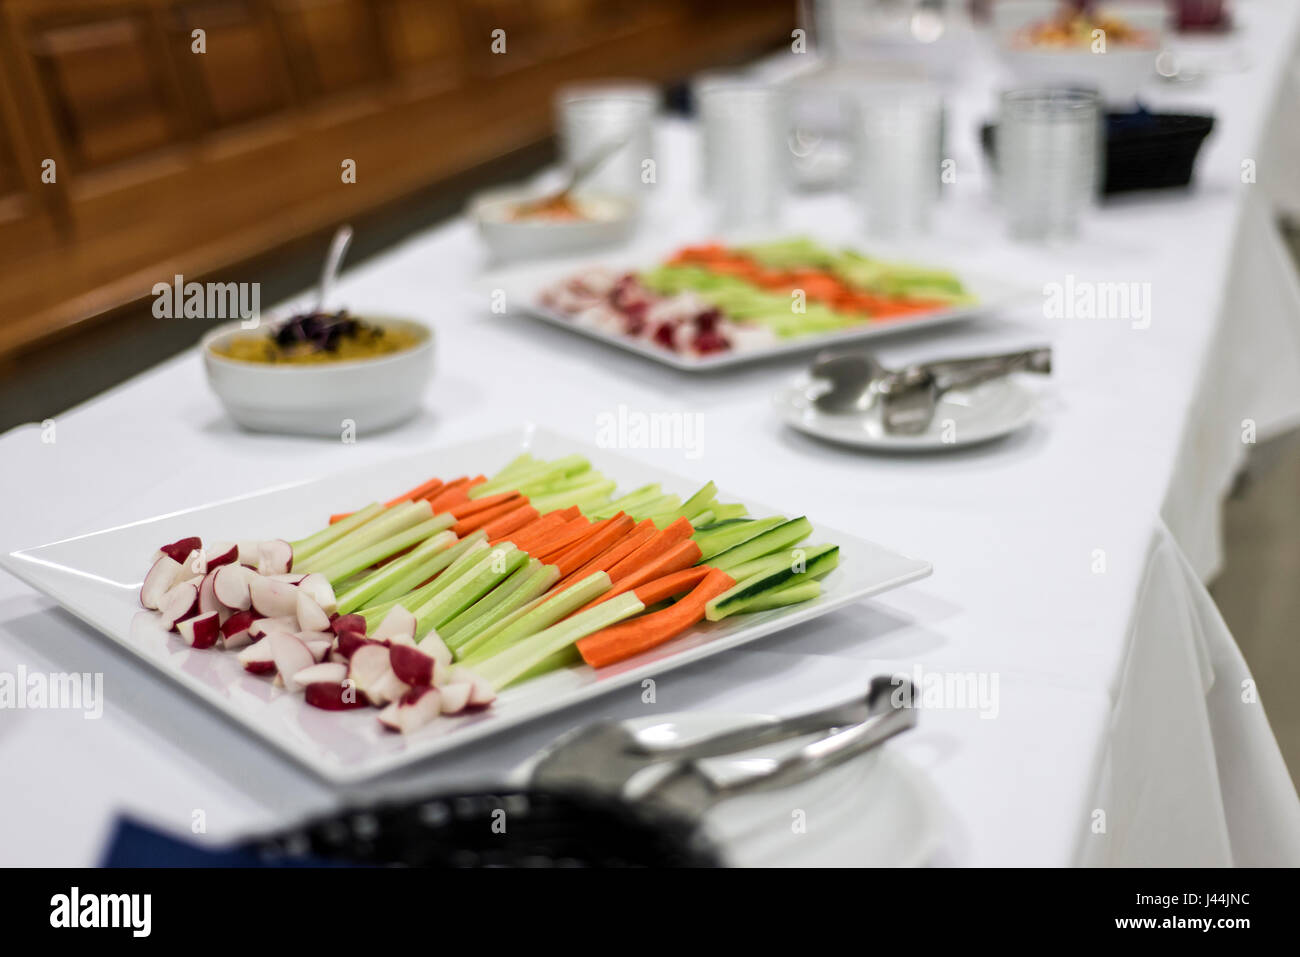 Veggie salad mix, celery and carrot sticks on white table healty dinner - Stock Image